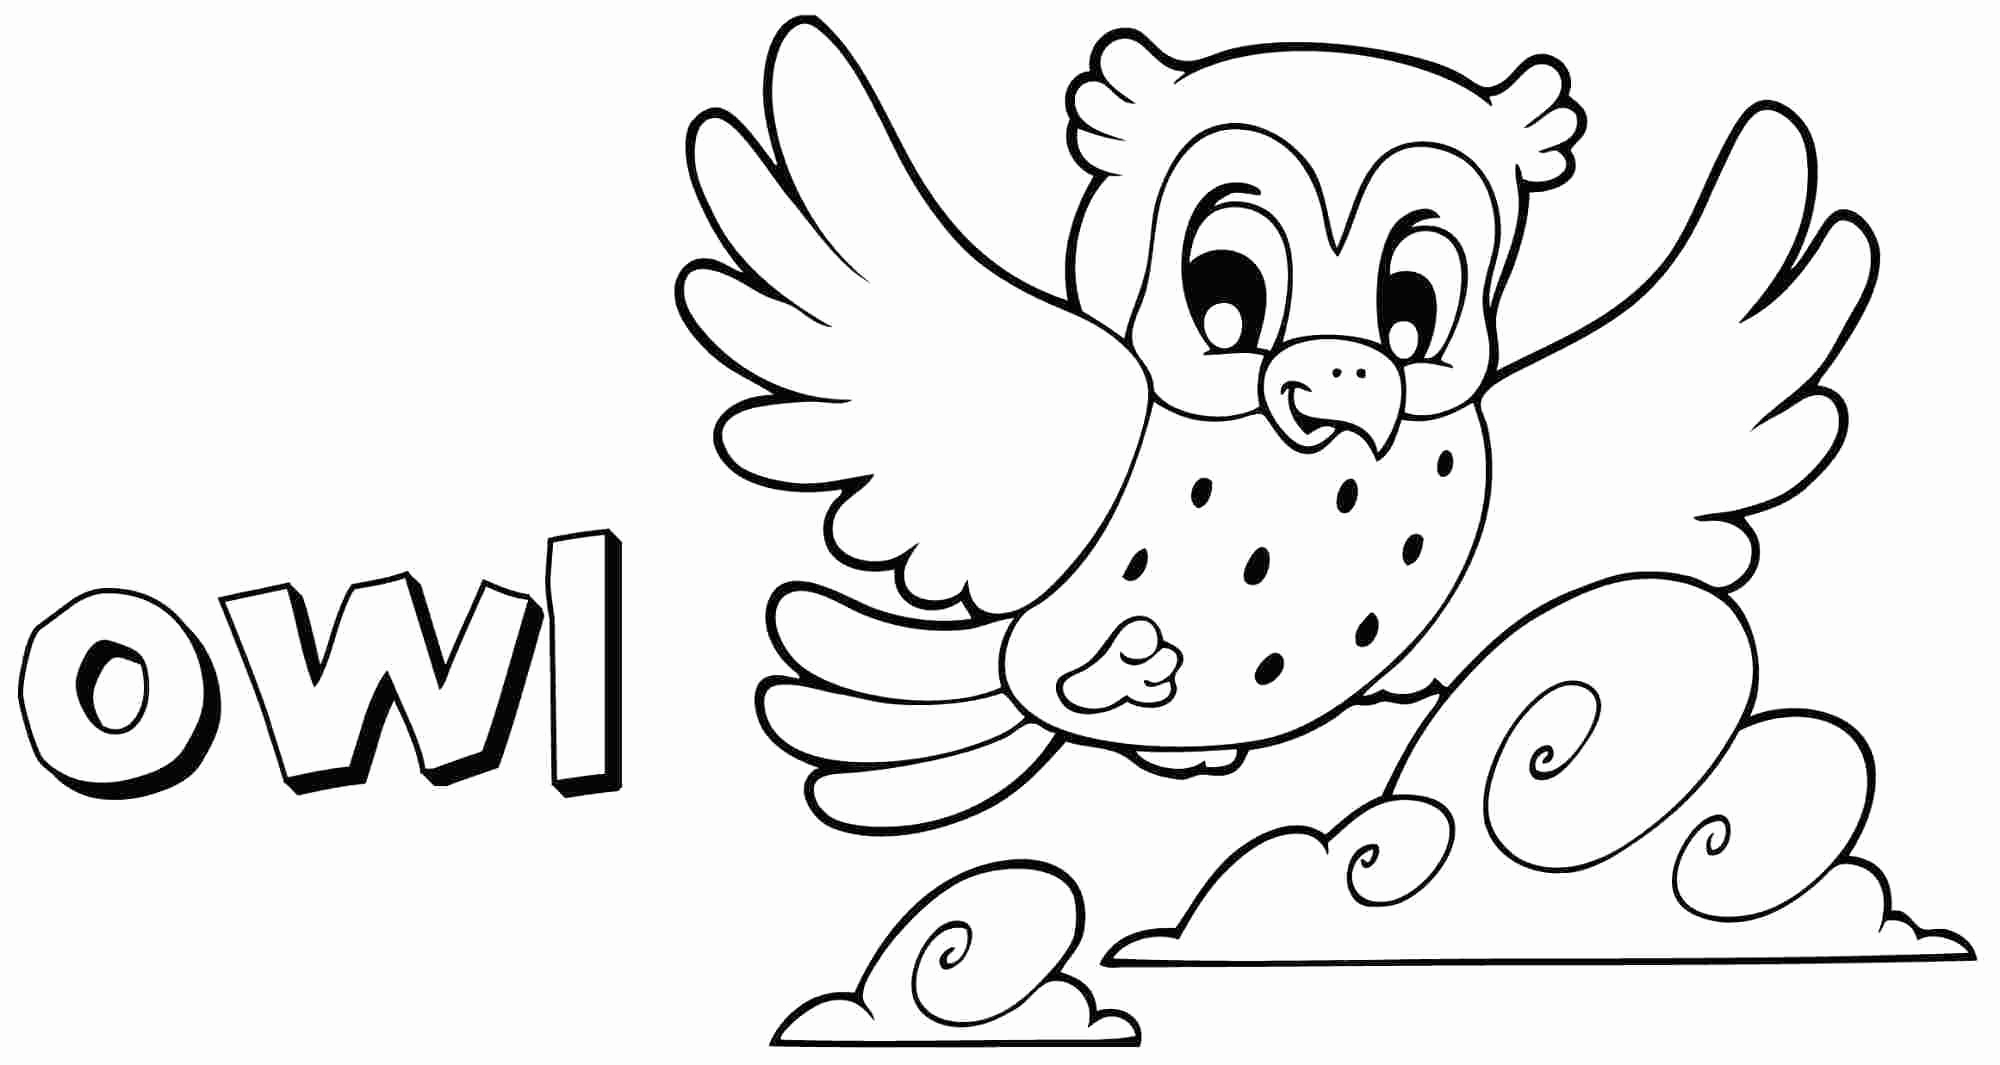 easy cute owl coloring pages owl coloring pages print free printable cute owl coloring cute owl pages easy coloring